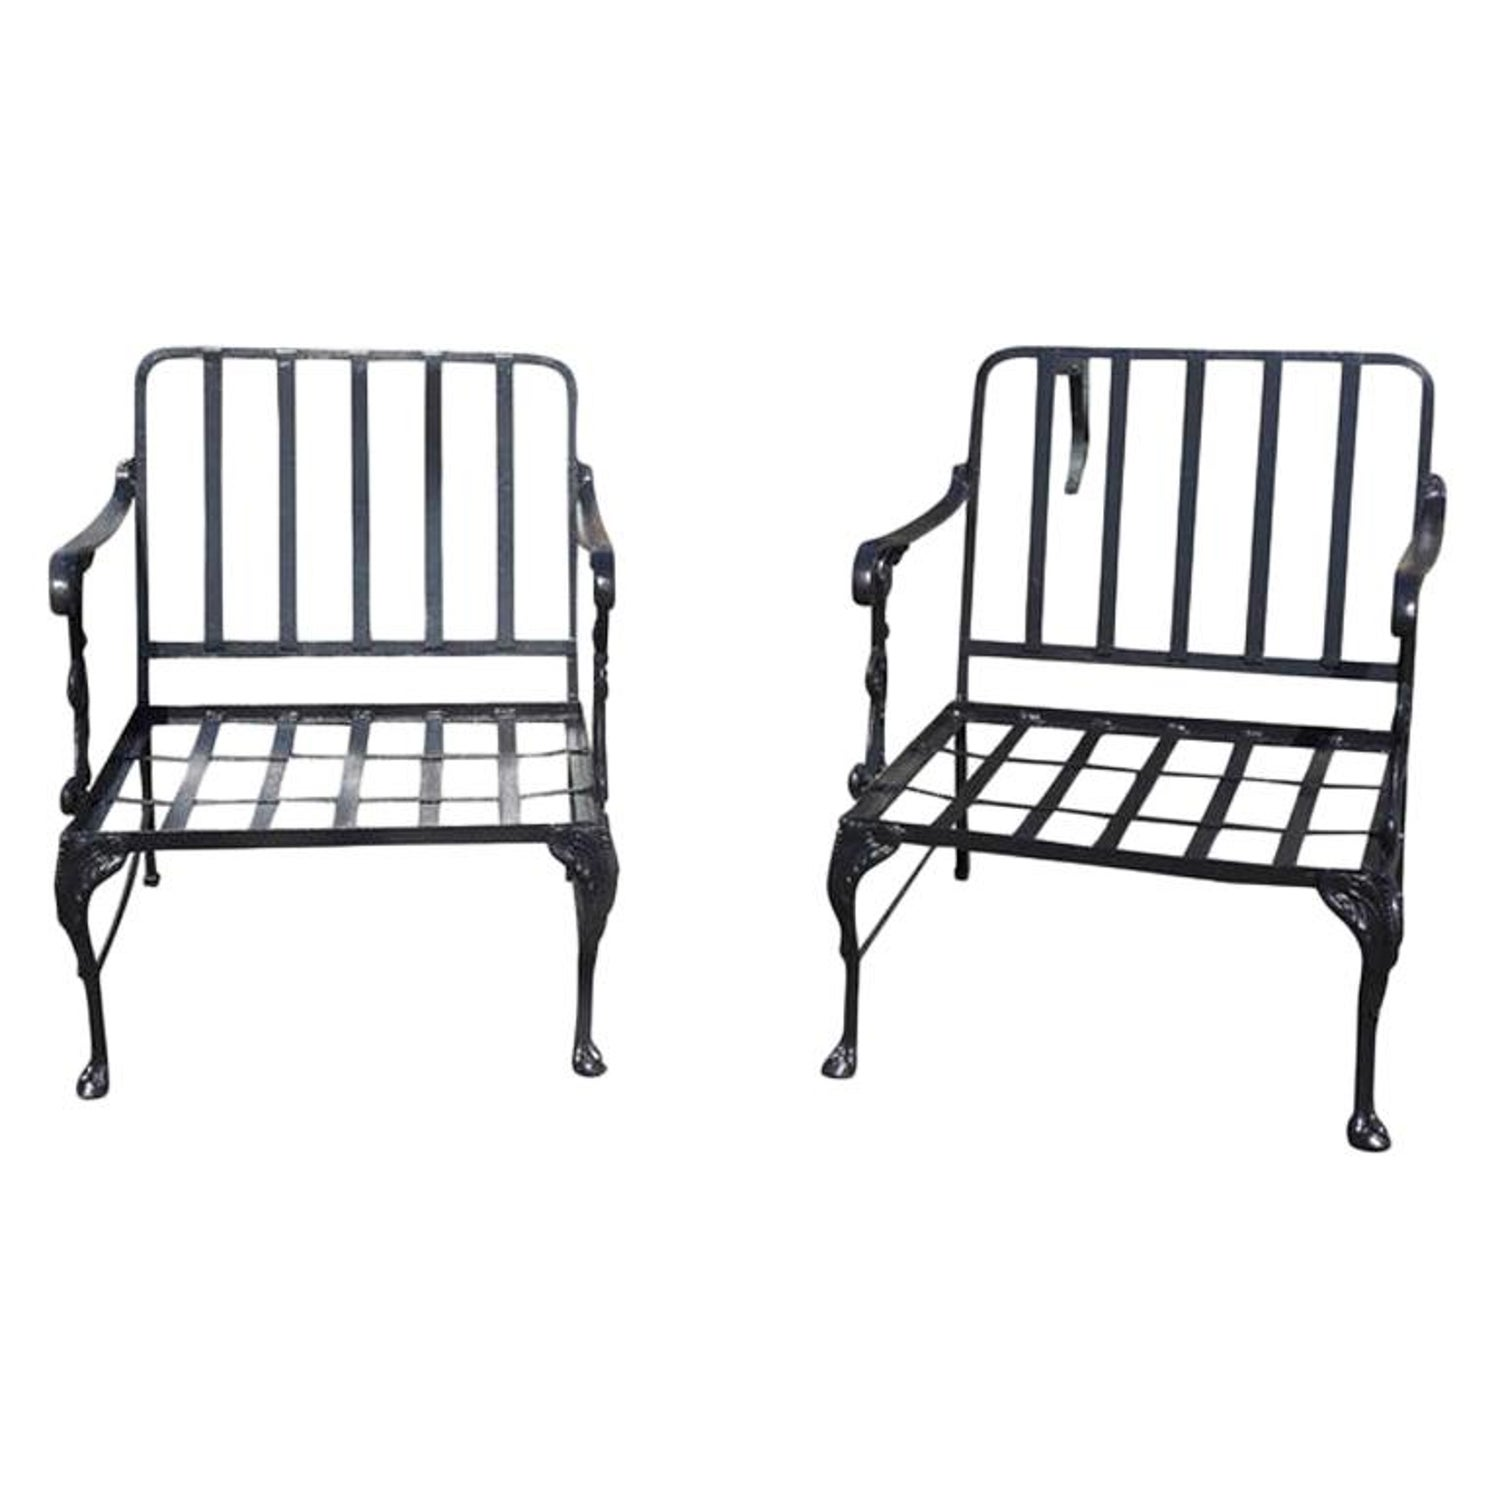 Groovy Vintage Outdoor Porch Or Garden Metal Lounge Chairs Bralicious Painted Fabric Chair Ideas Braliciousco